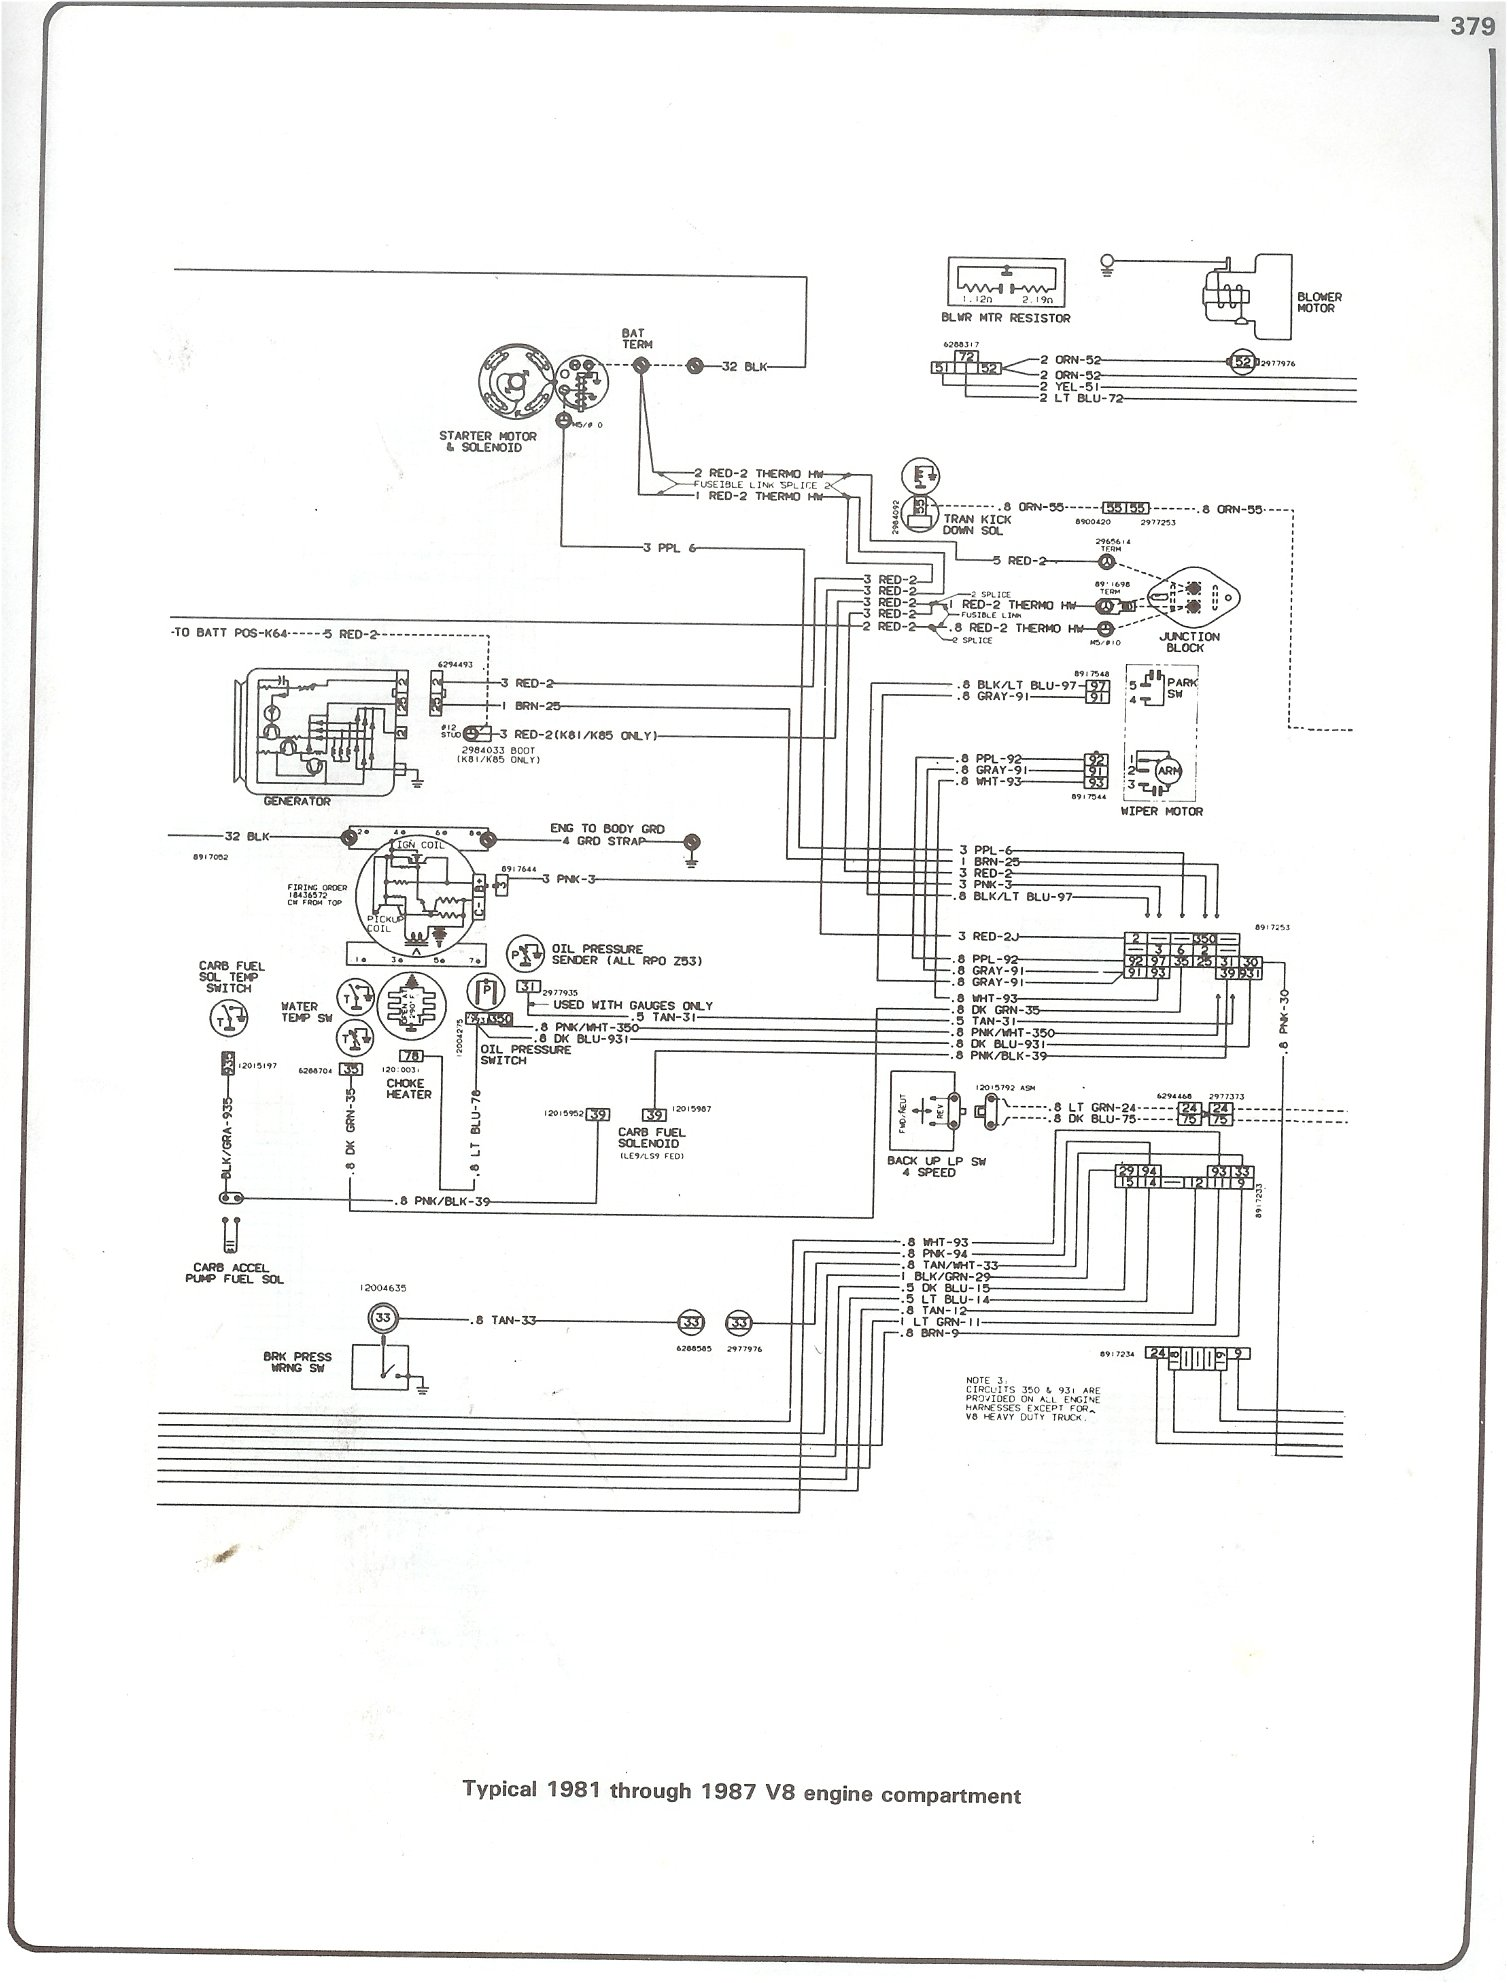 hight resolution of 86 suburban wiring diagram detailed schematics diagram rh lelandlutheran com 1990 gmc wiring diagrams 1990 chevy